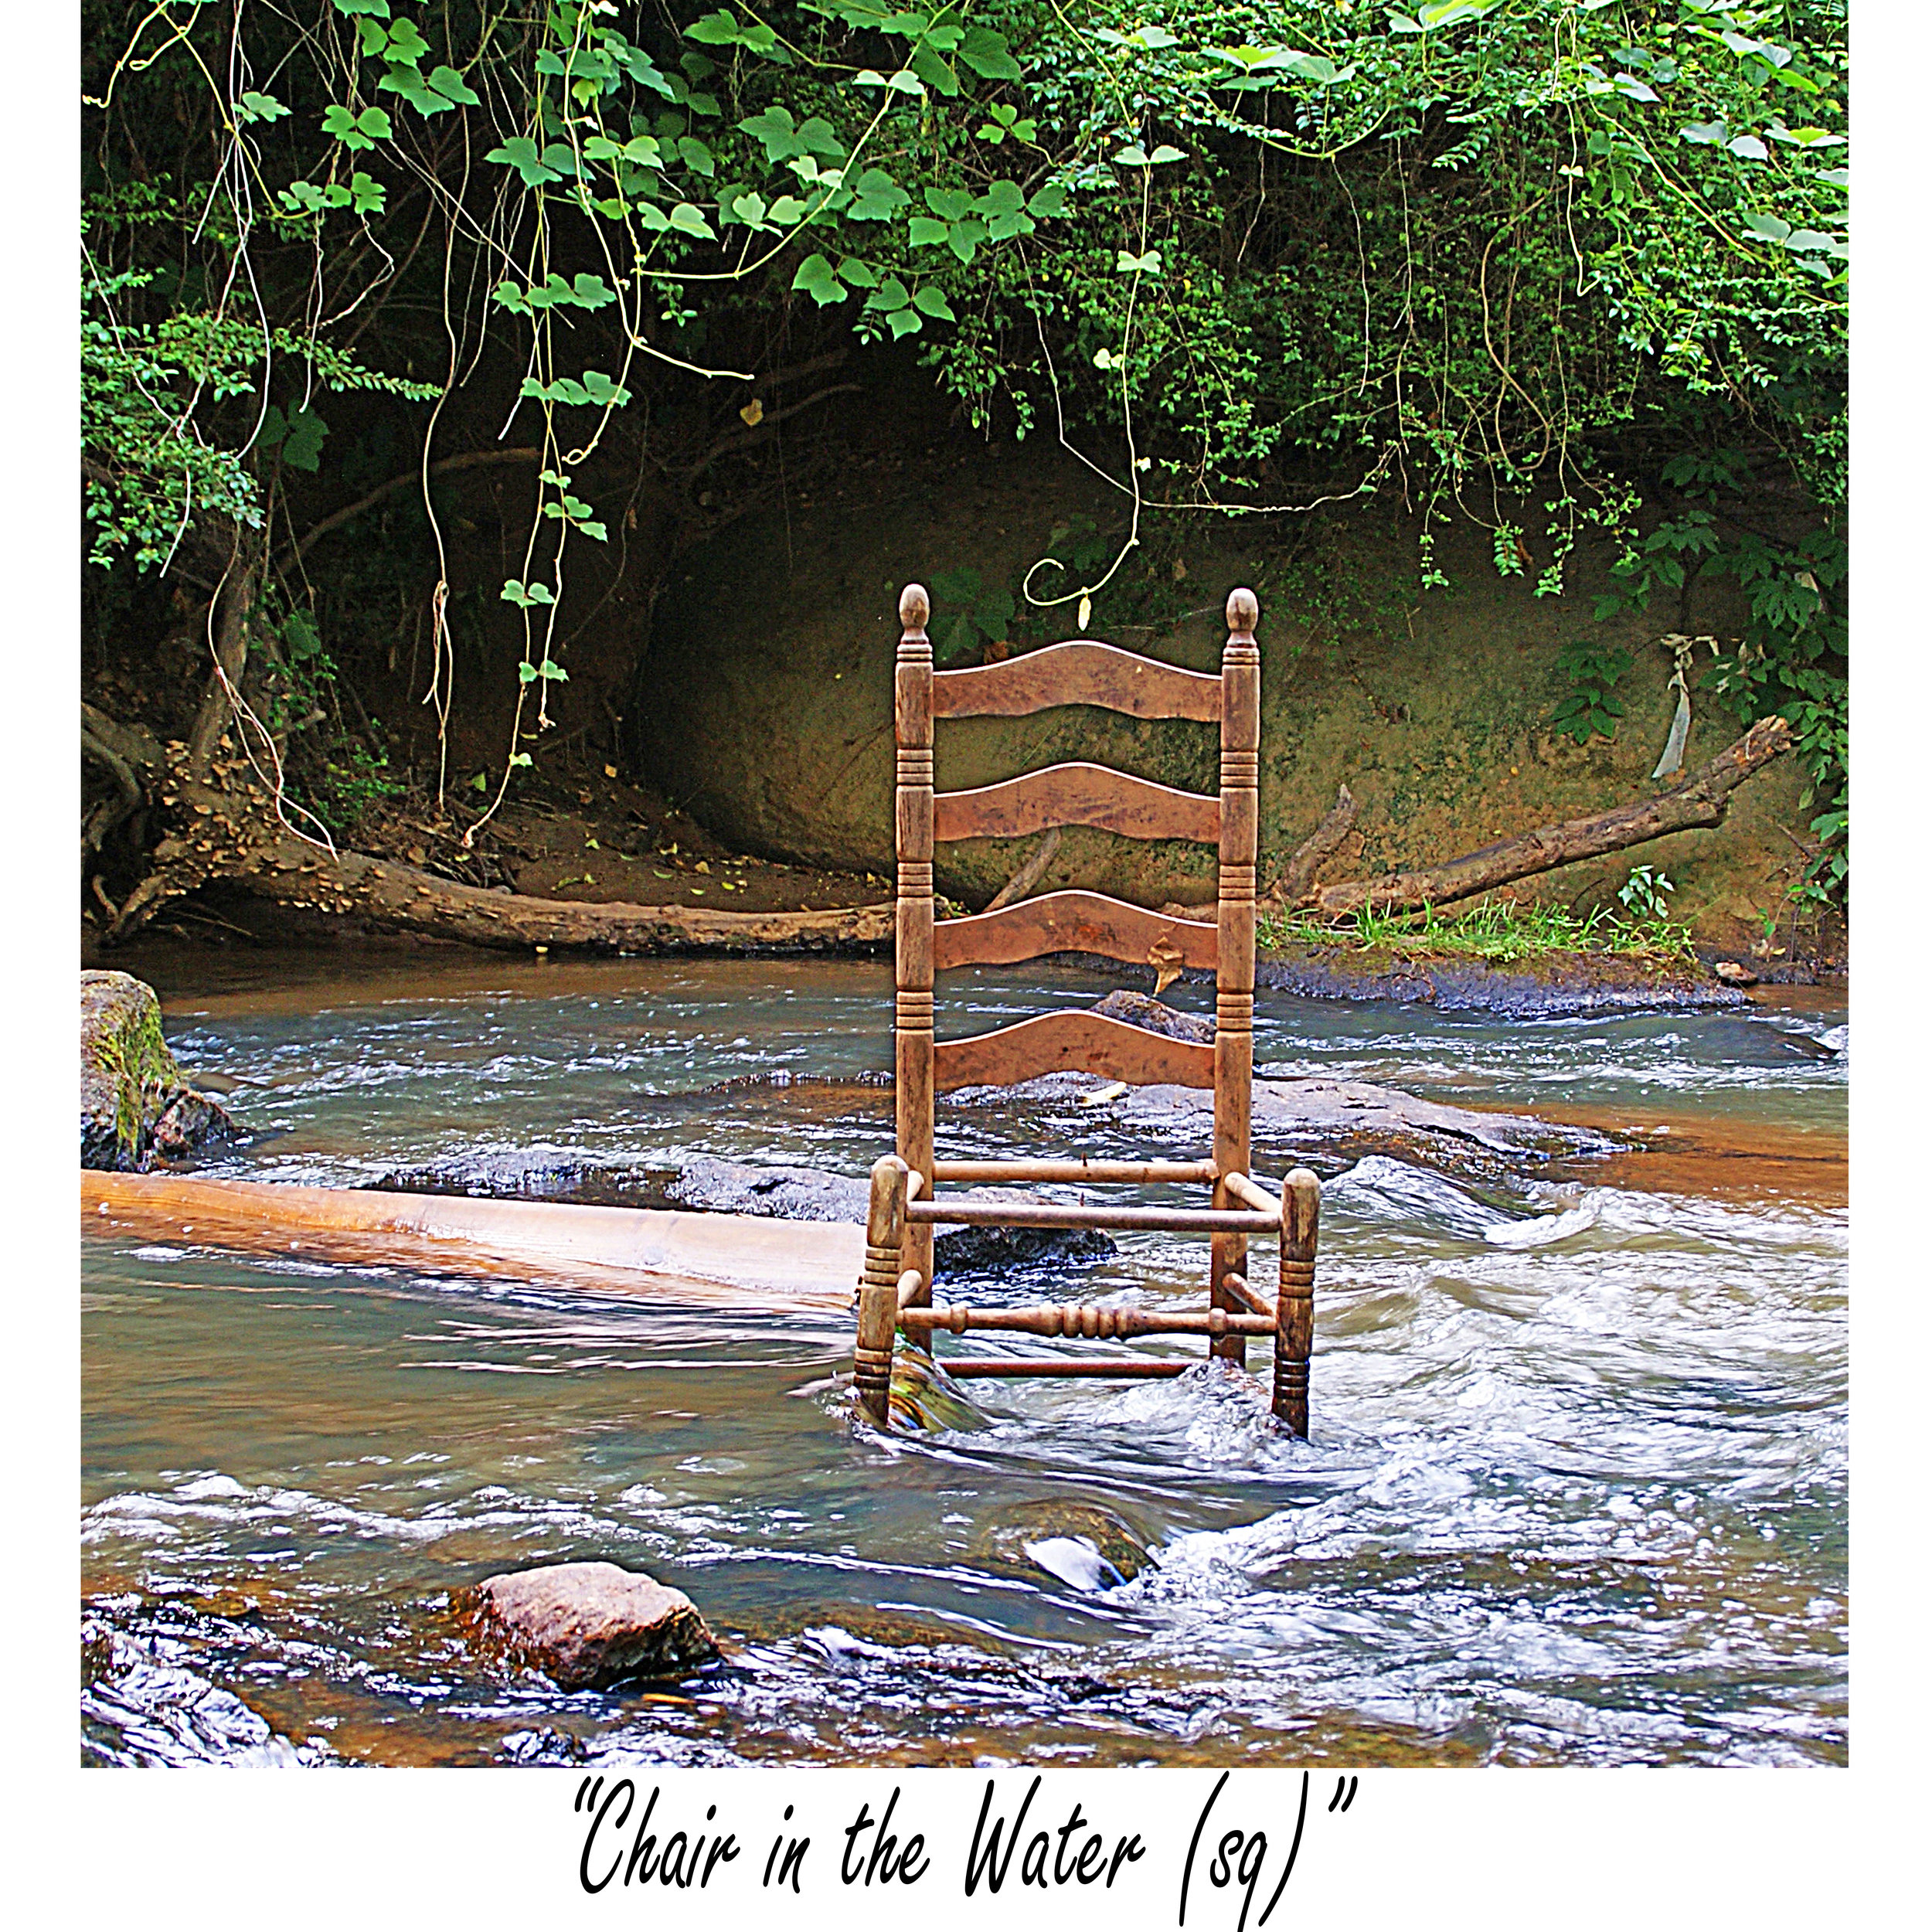 Chair in the water (sq).jpg